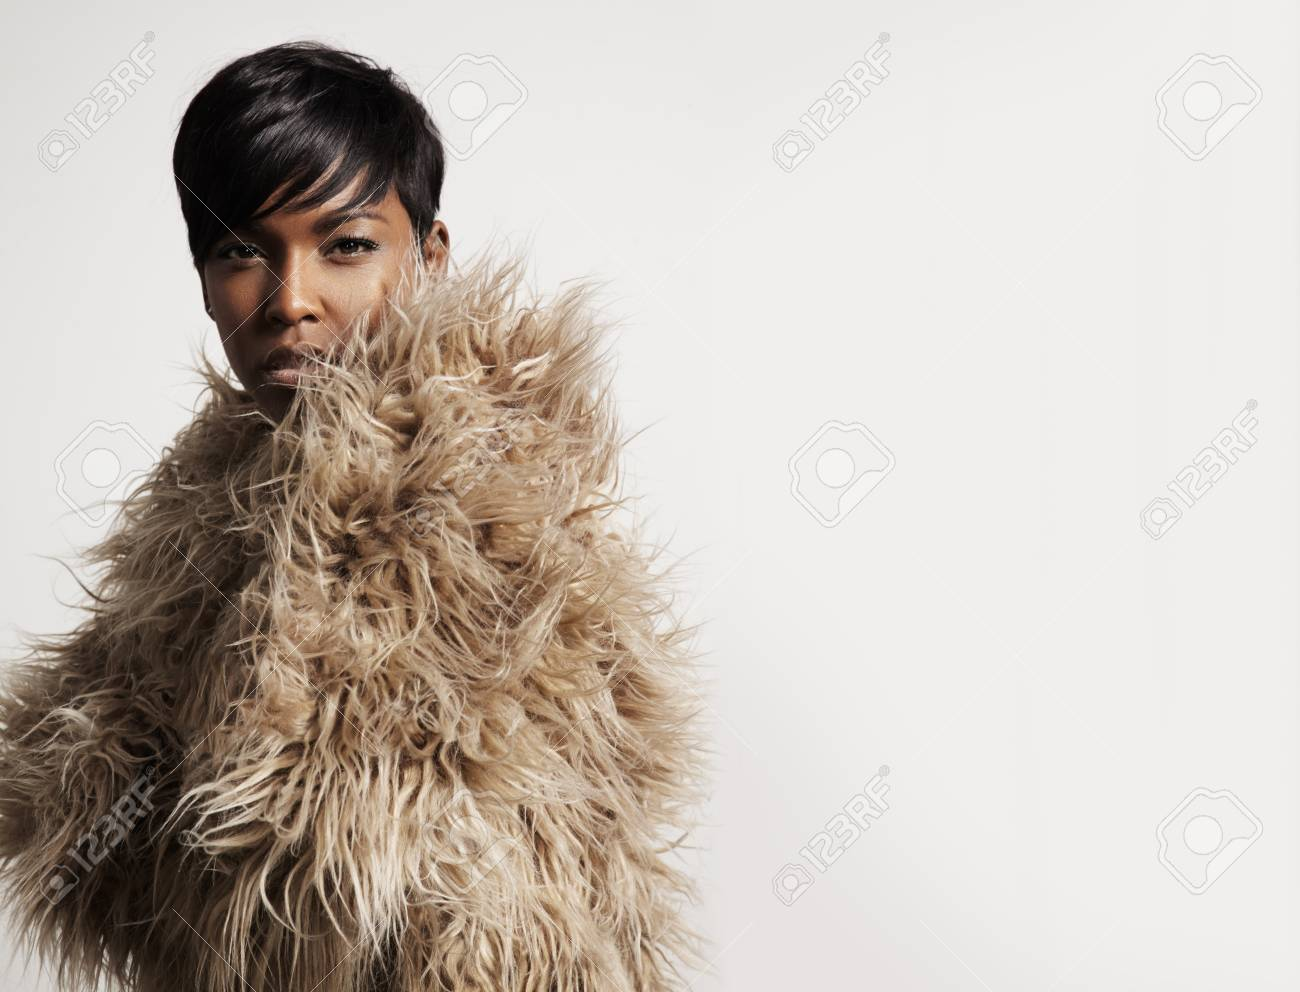 woman wearing a faux fur and watching at camera - 35825212